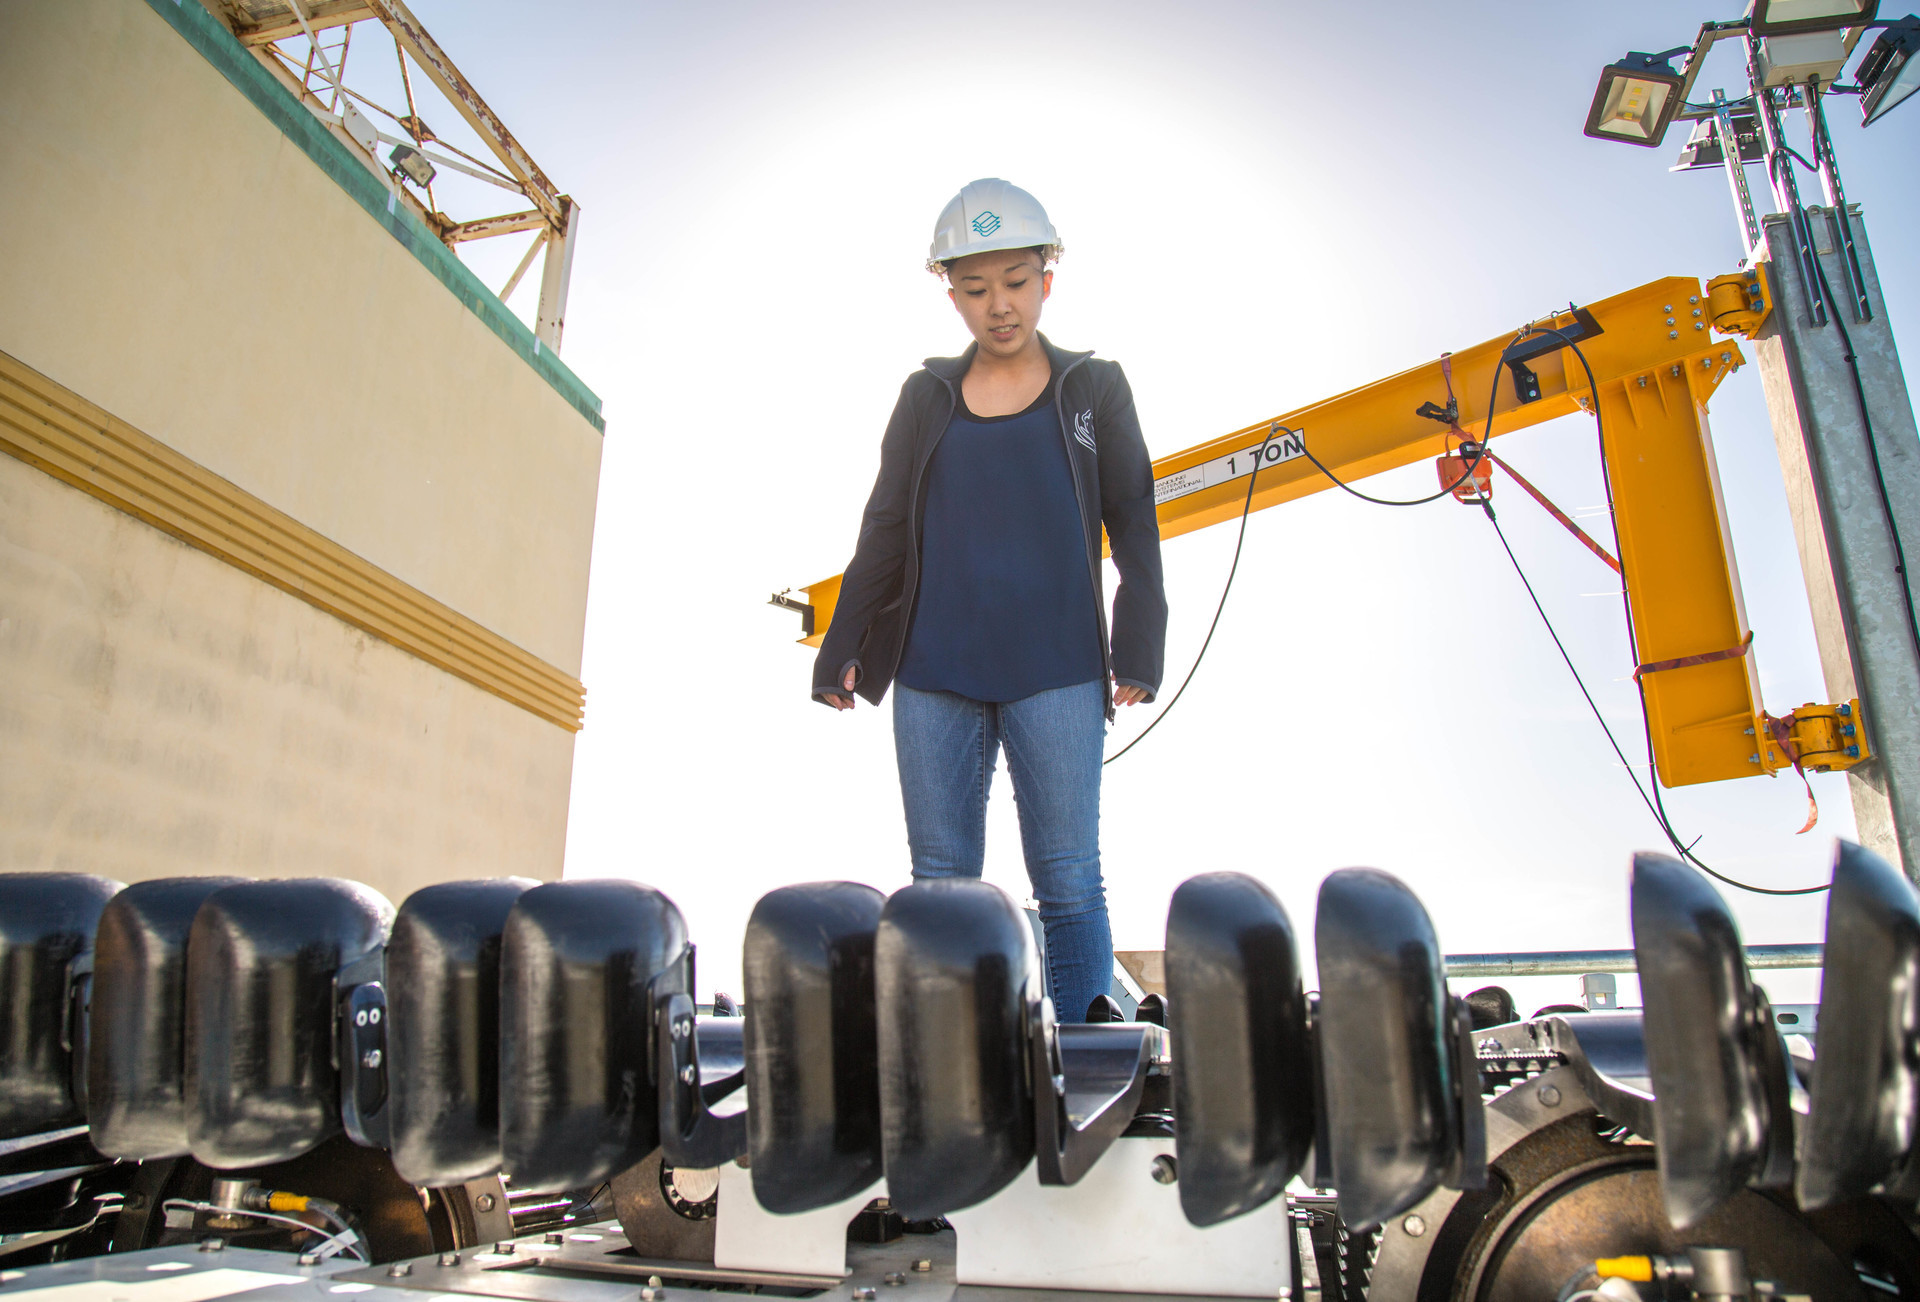 woman stands on a barge with a hardhat on.